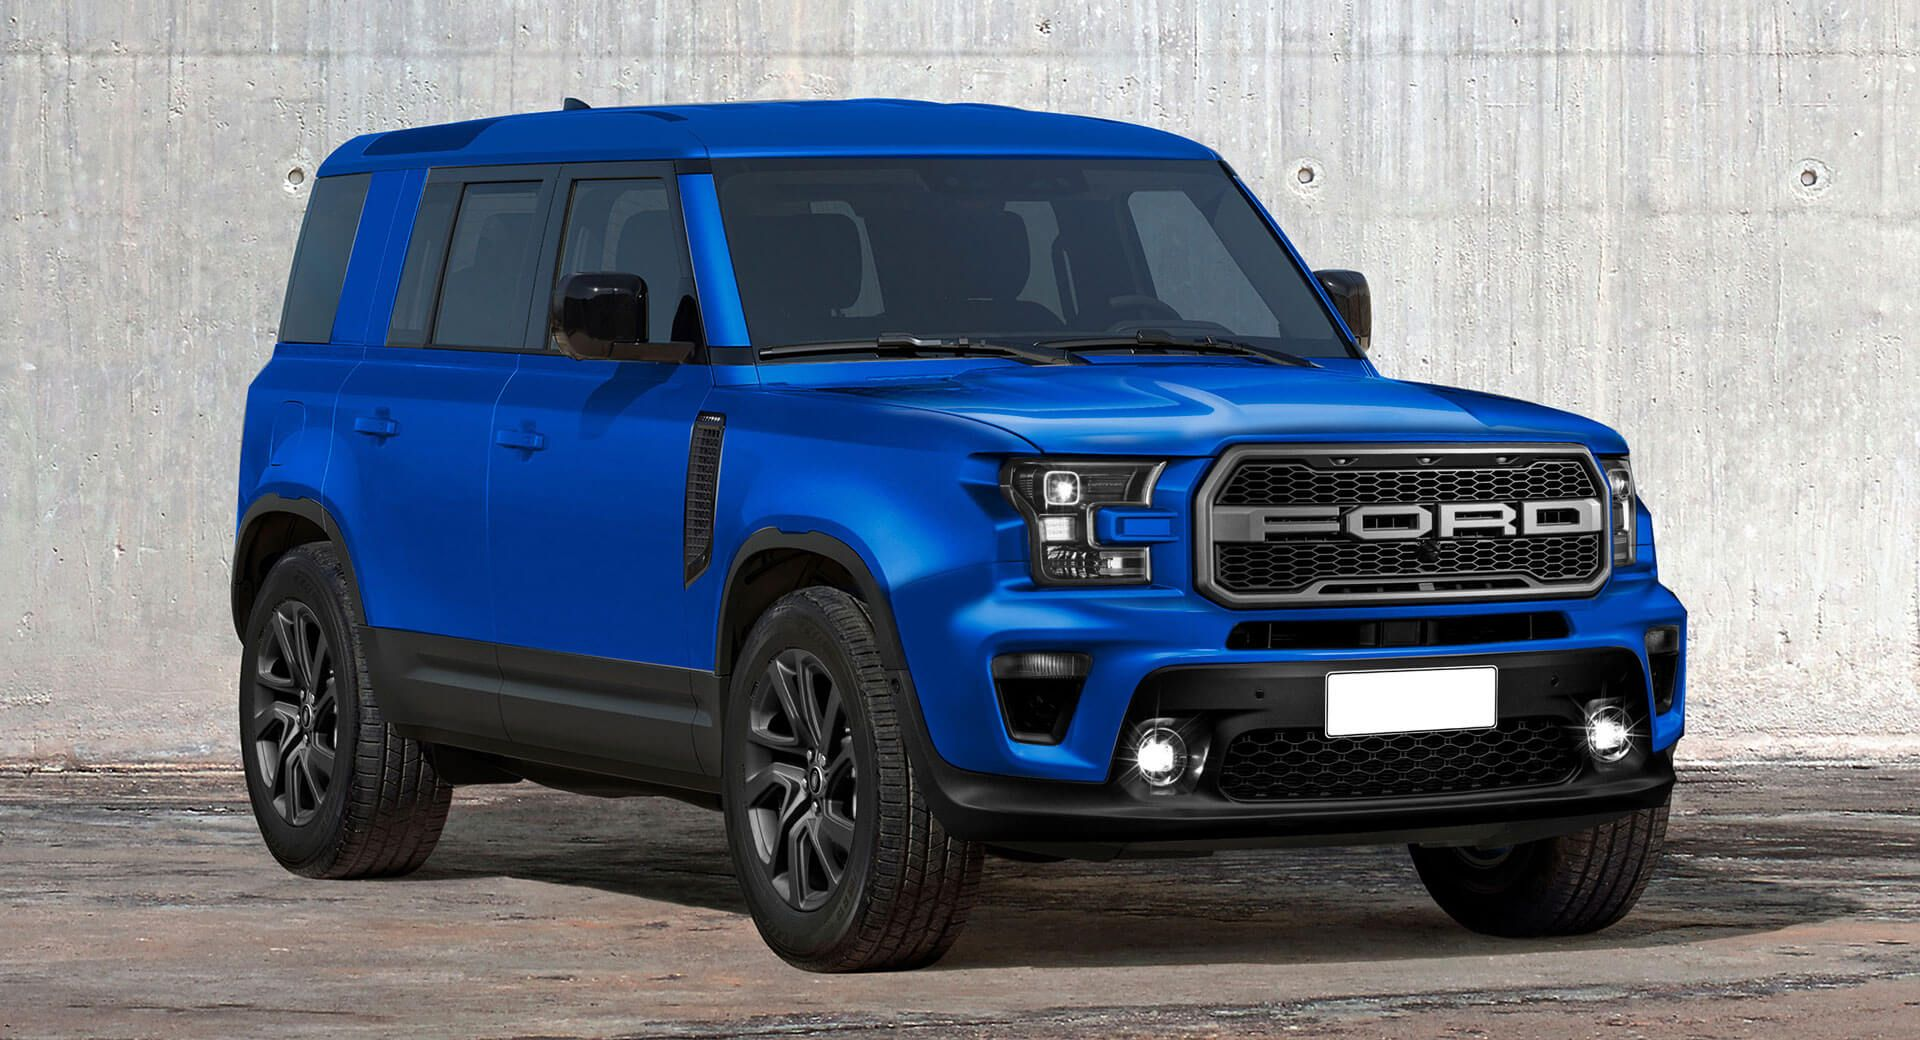 2021 Ford Baby Bronco Won T Look Like A Baby Defender But It S Amusing All The Same In 2020 Land Rover Discovery Sport Jeep Renegade Bronco